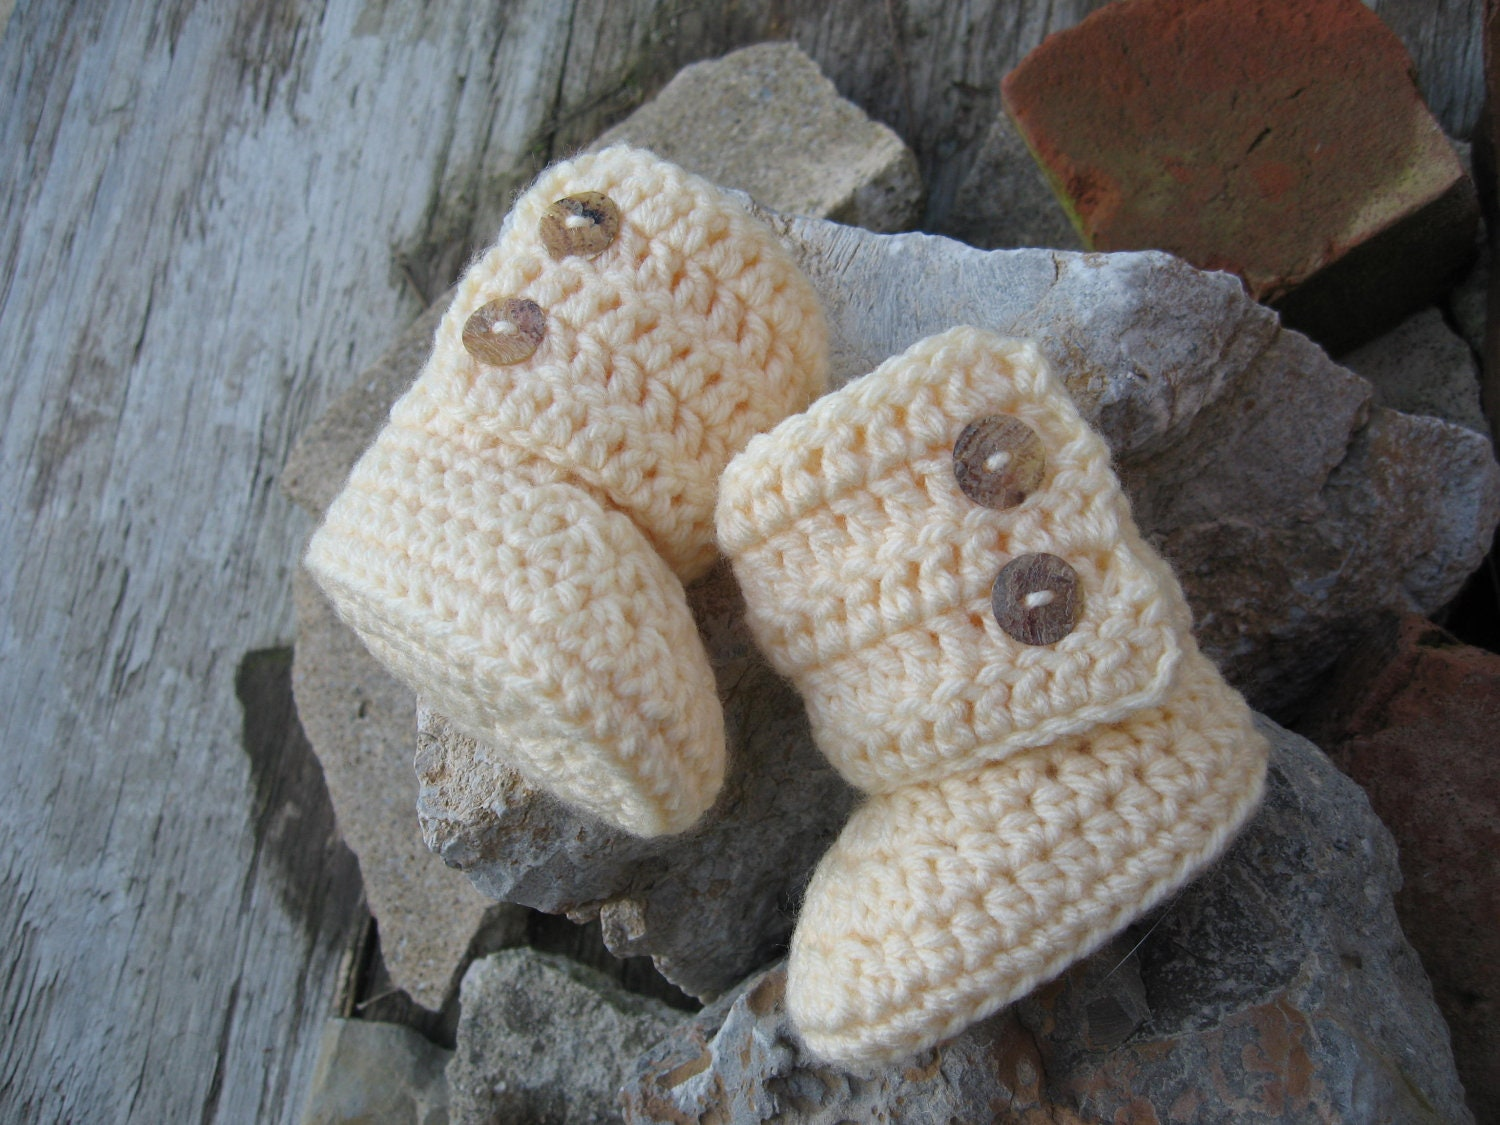 Crochet Uggs : Handmade Crochet Baby Booties Creme Uggs Free by JennsMinis